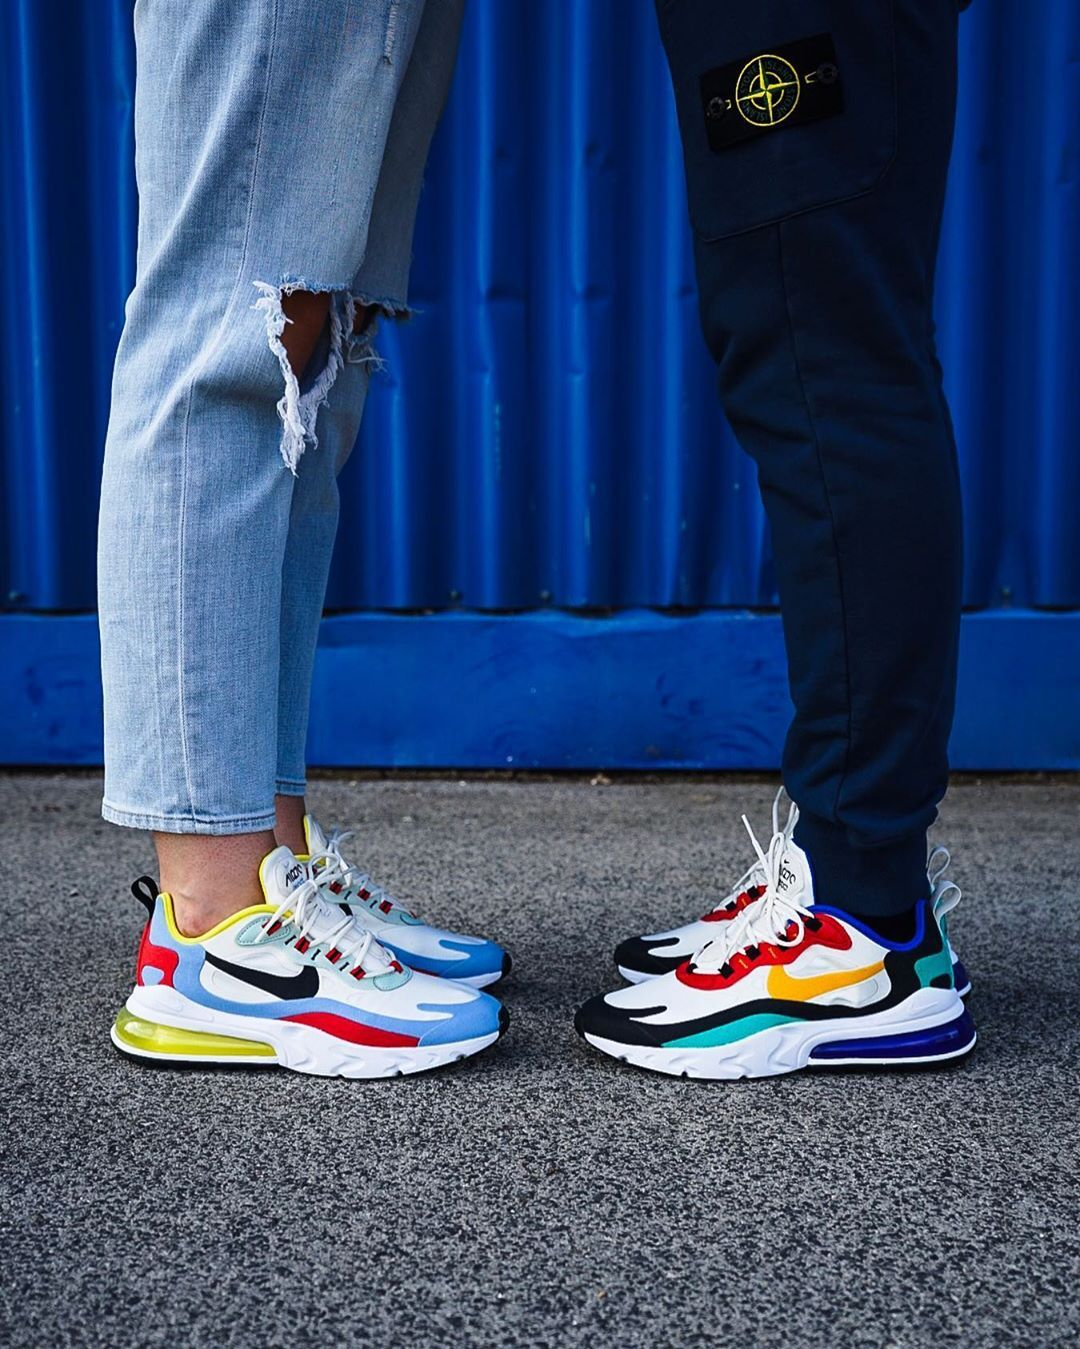 The News @nike Airmax 270 React Men & Women are available at